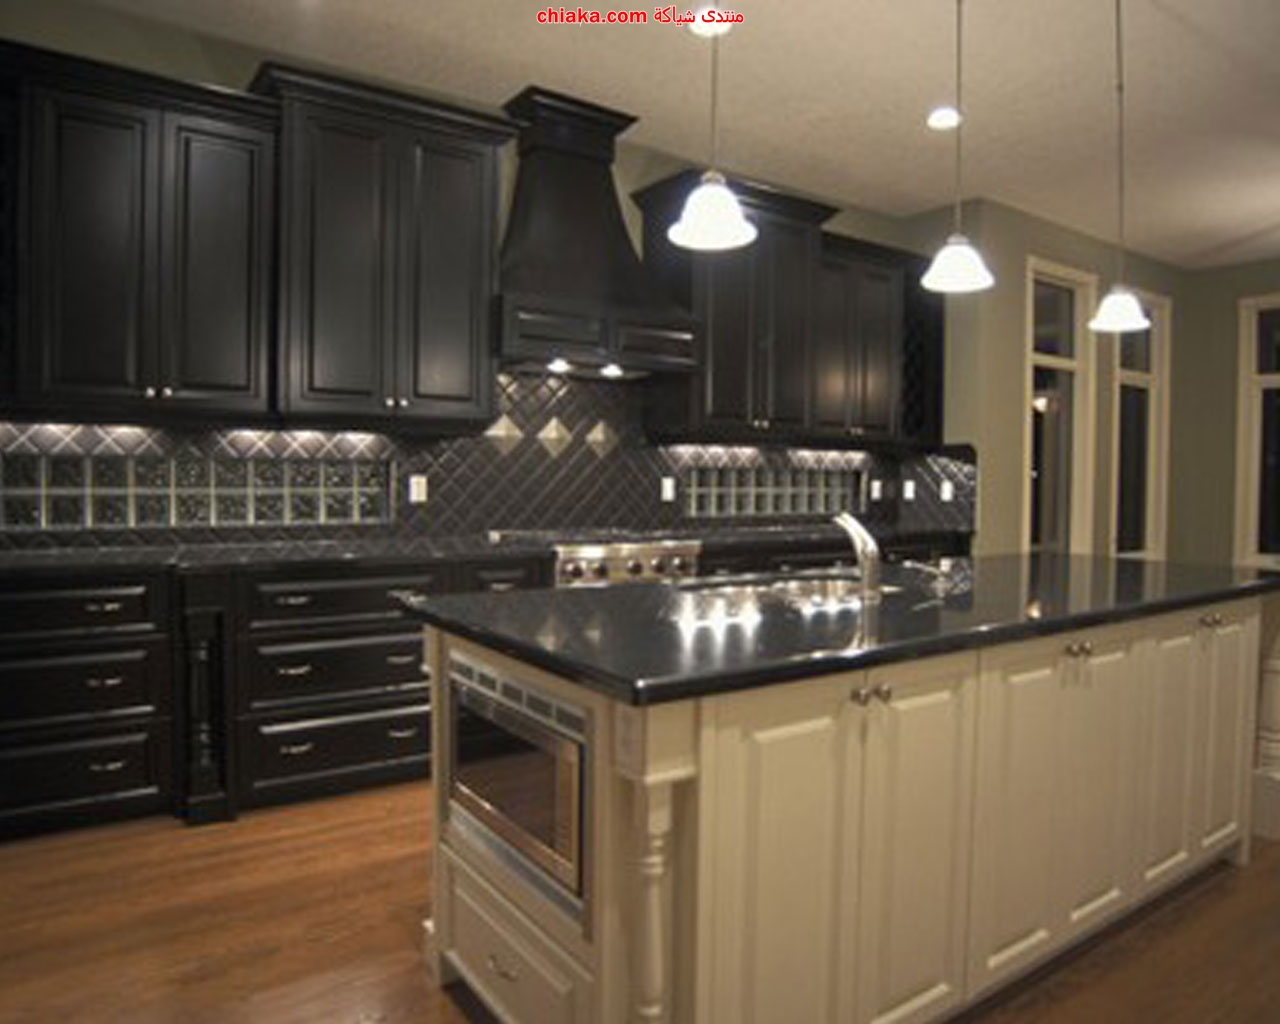 white or black kitchen cabinets ديكورات مطابخ 2013 29106